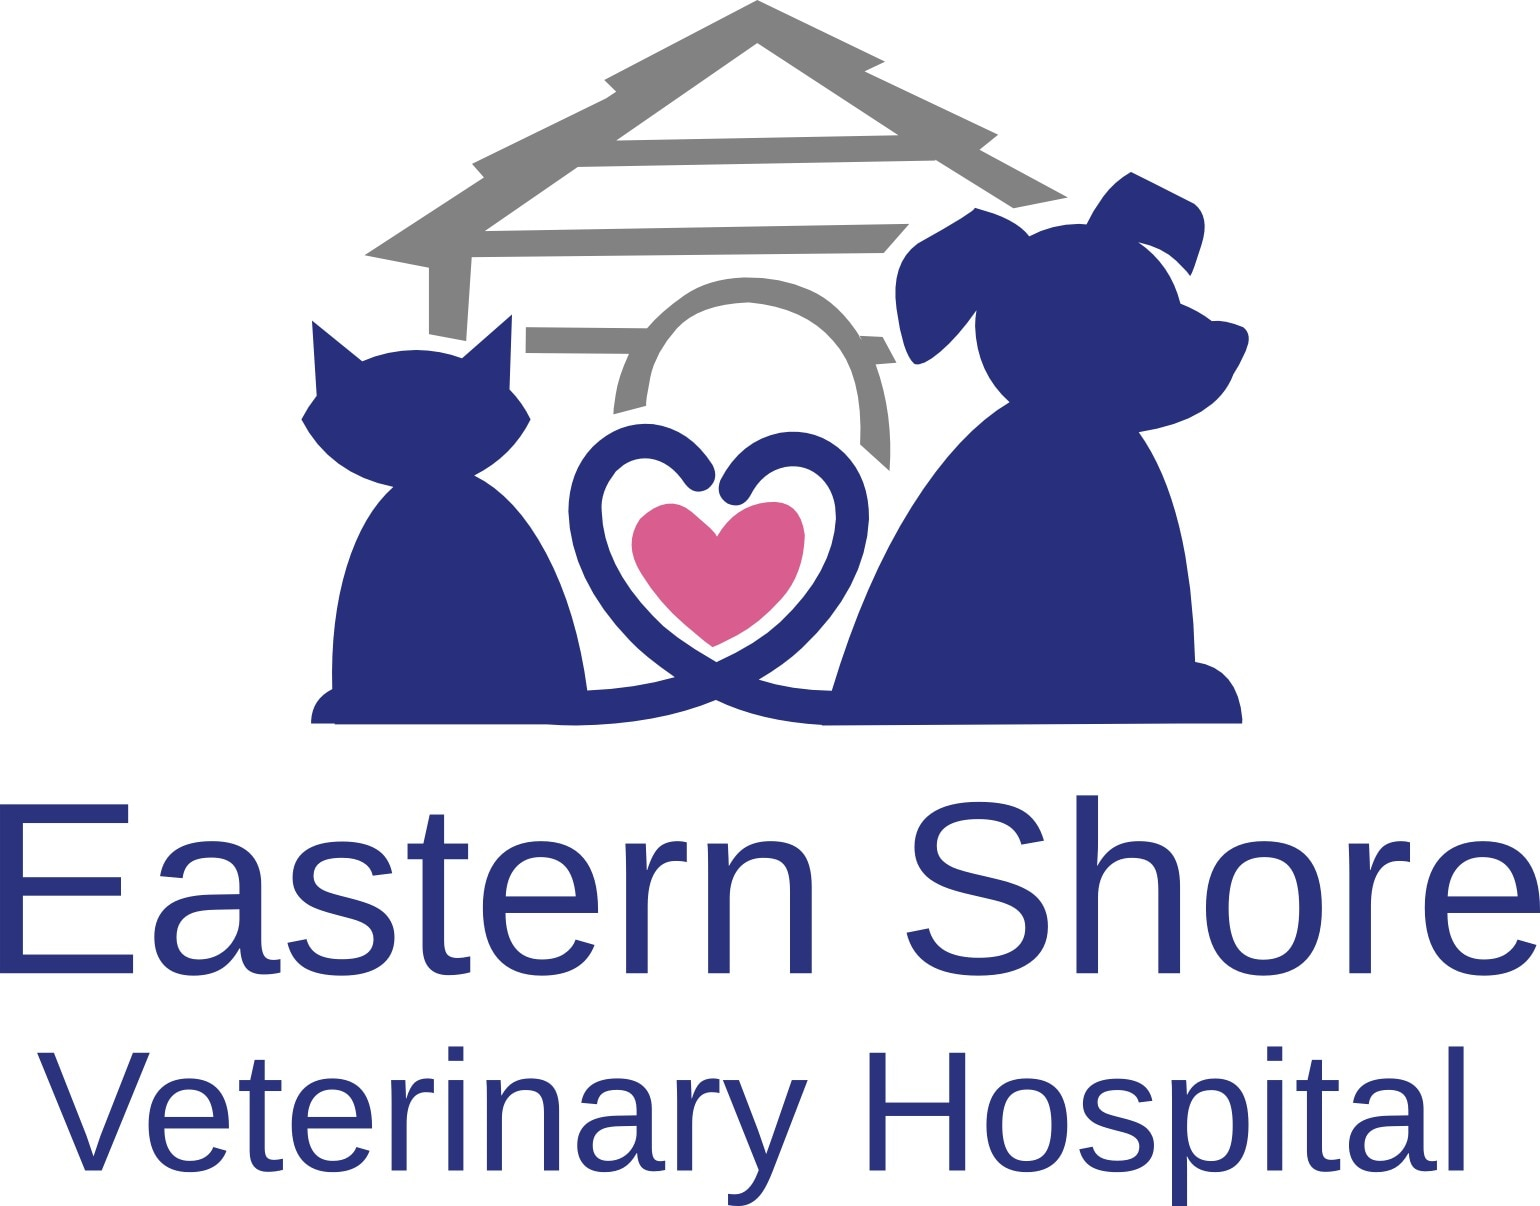 Eastern Shore Veterinary Hospital logo